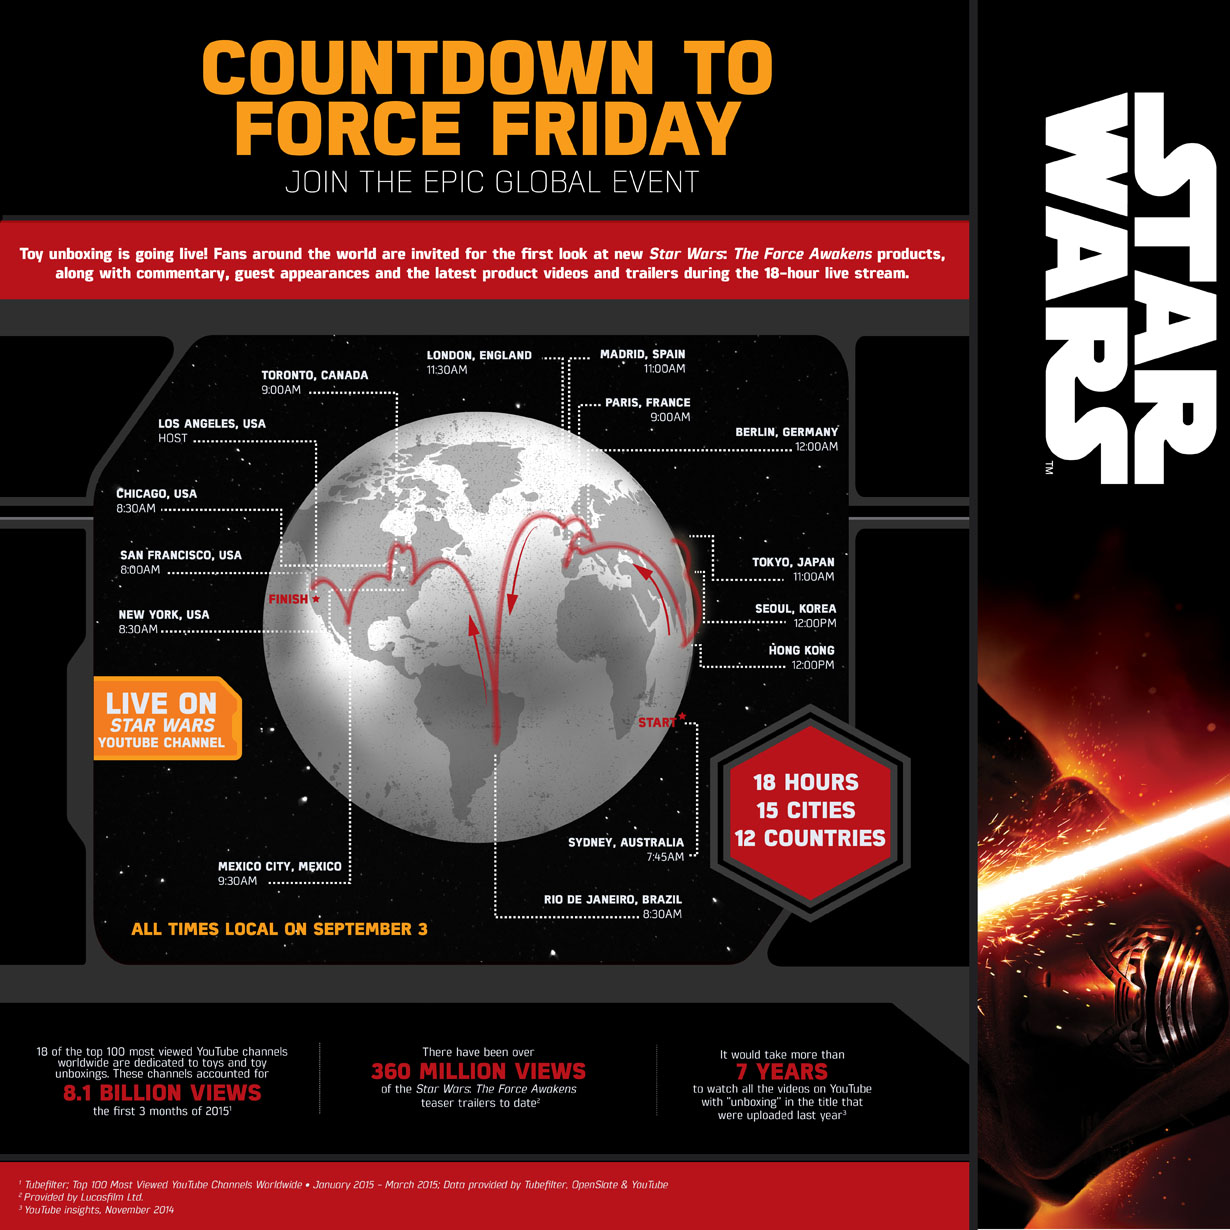 The Force Awakens Around the World:  Star Wars Fans Invited to Join Epic Global Event on YouTube (News Release)